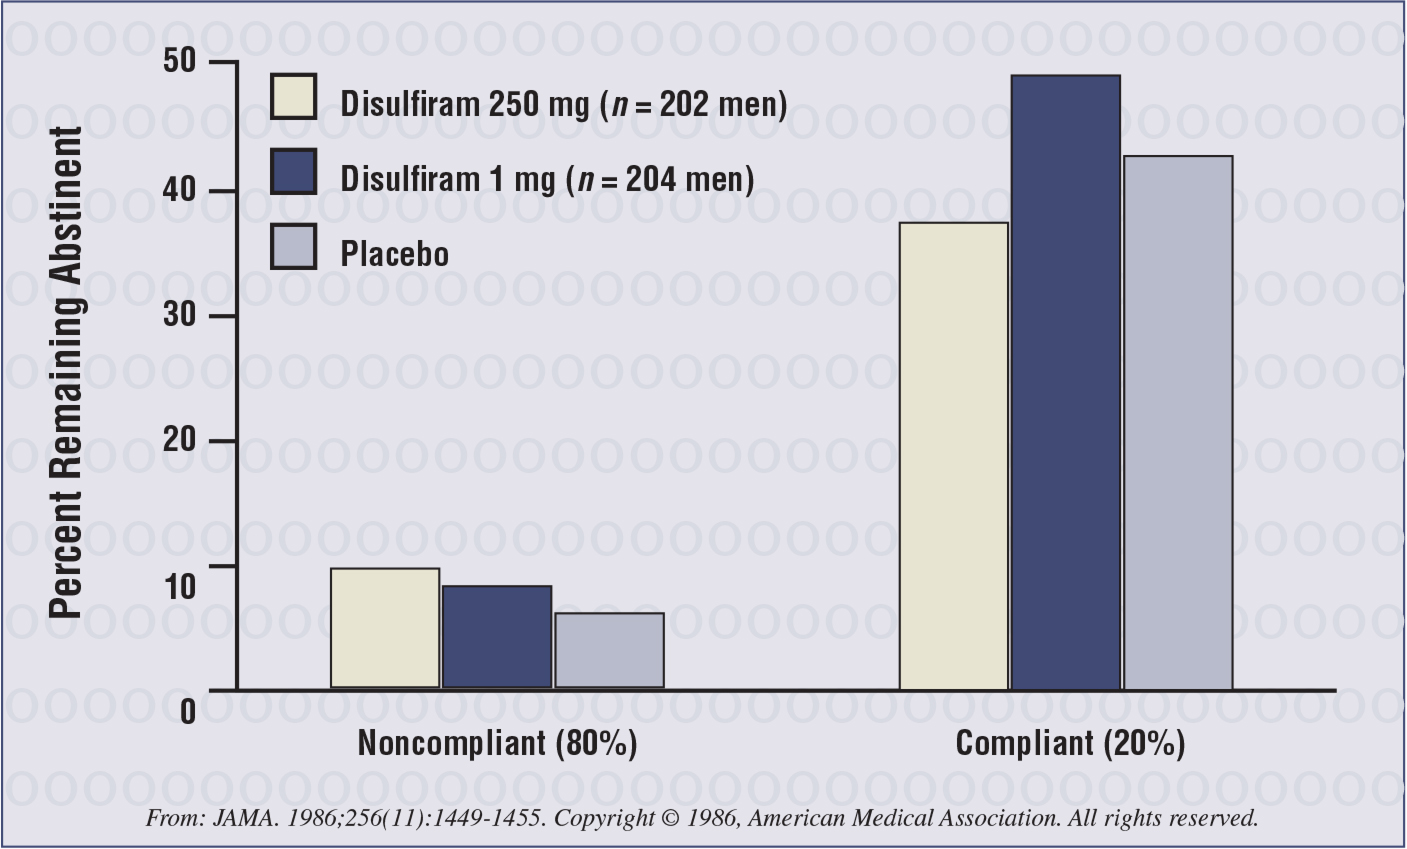 Alcohol abstinence rates for two doses of disulfiram compared with placebo in 406 men. Medication compliance was shown to be the primary factor in maintaining abstinence.17